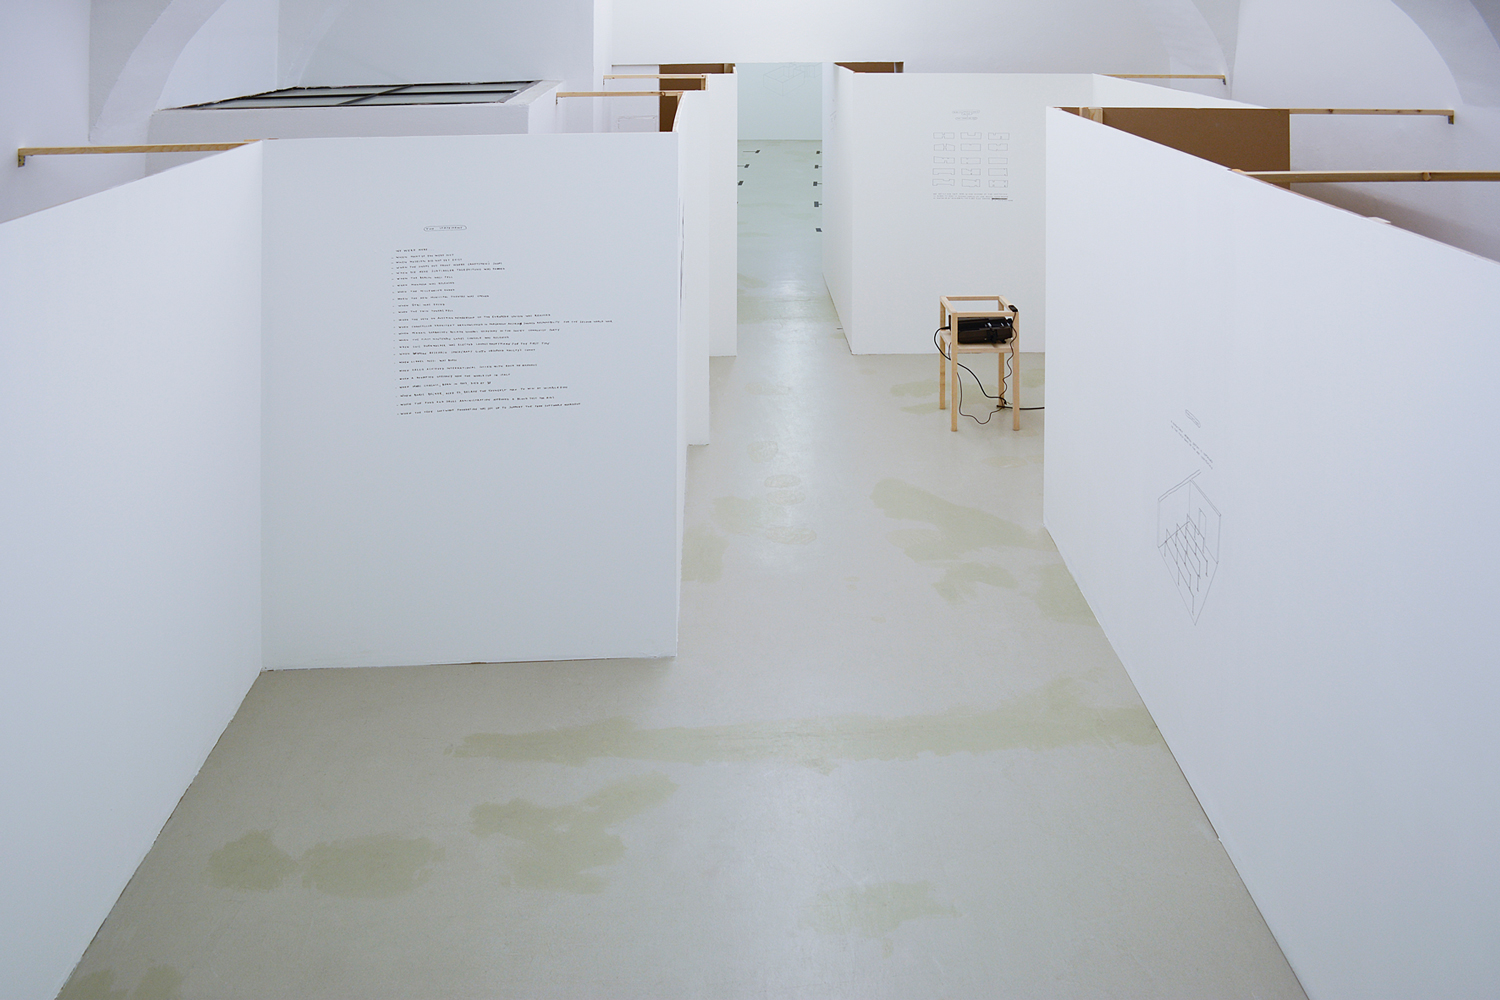 Spatial Dispositions, Aldo Giannotti, Installation View, ar/ge kunst, Bozen/Bolzano 2015 photo aneres